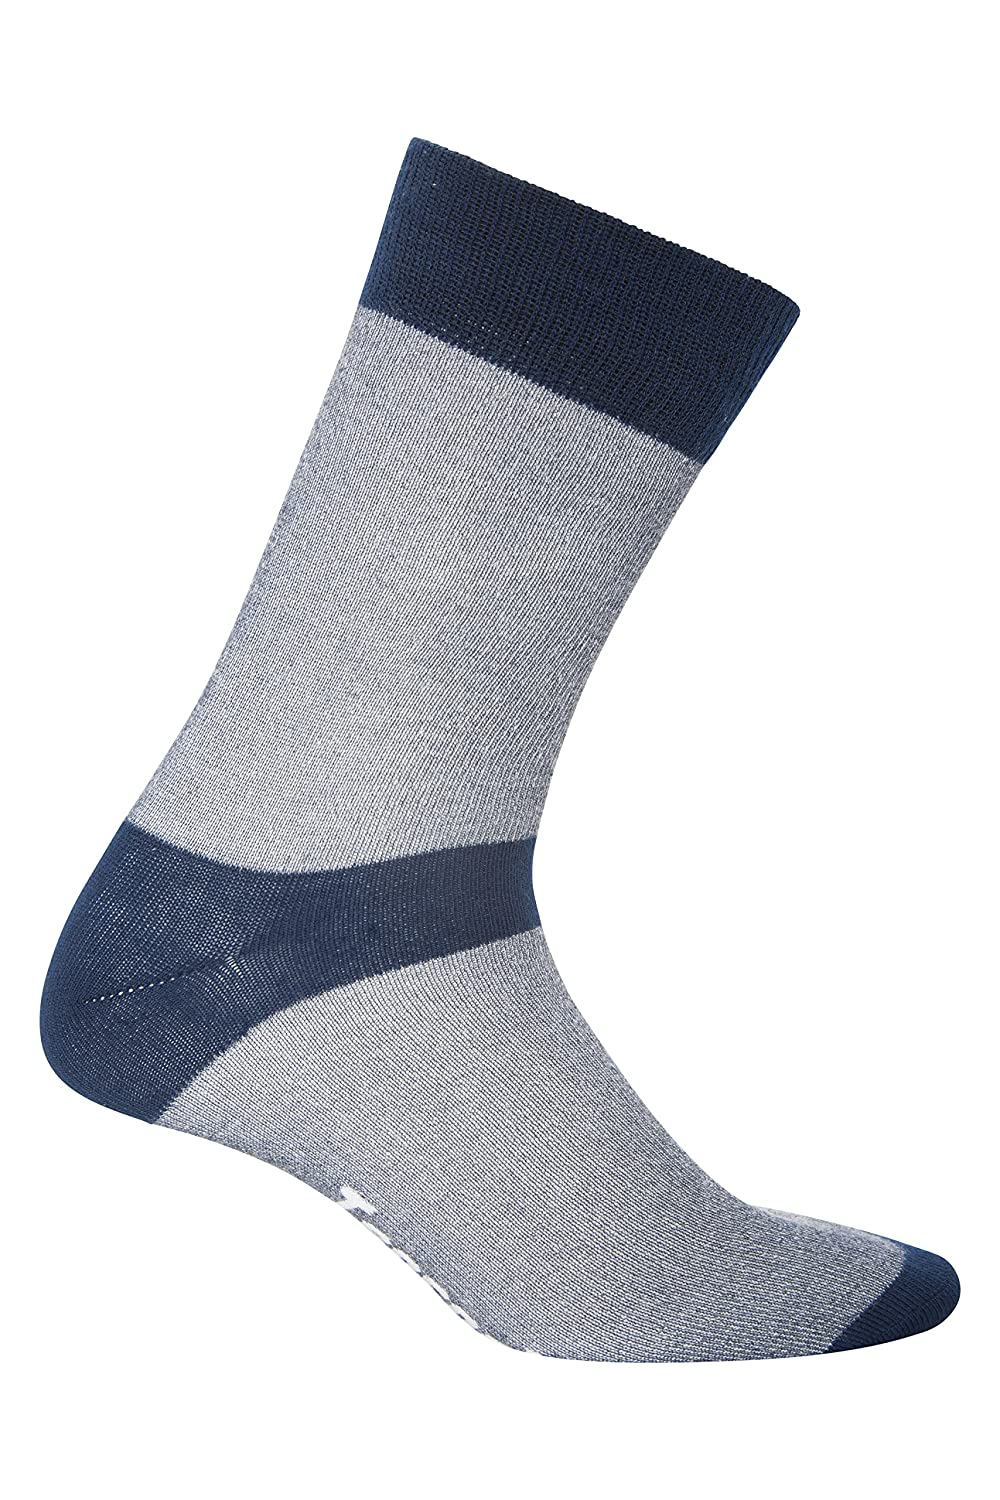 Mountain Warehouse IsoCool Liner Socks - 2 Pack, Breathable Summer Walking Socks, Comfortable, Machine Washable Long Socks, Antibacterial, Quick Dry – for Everyday Use